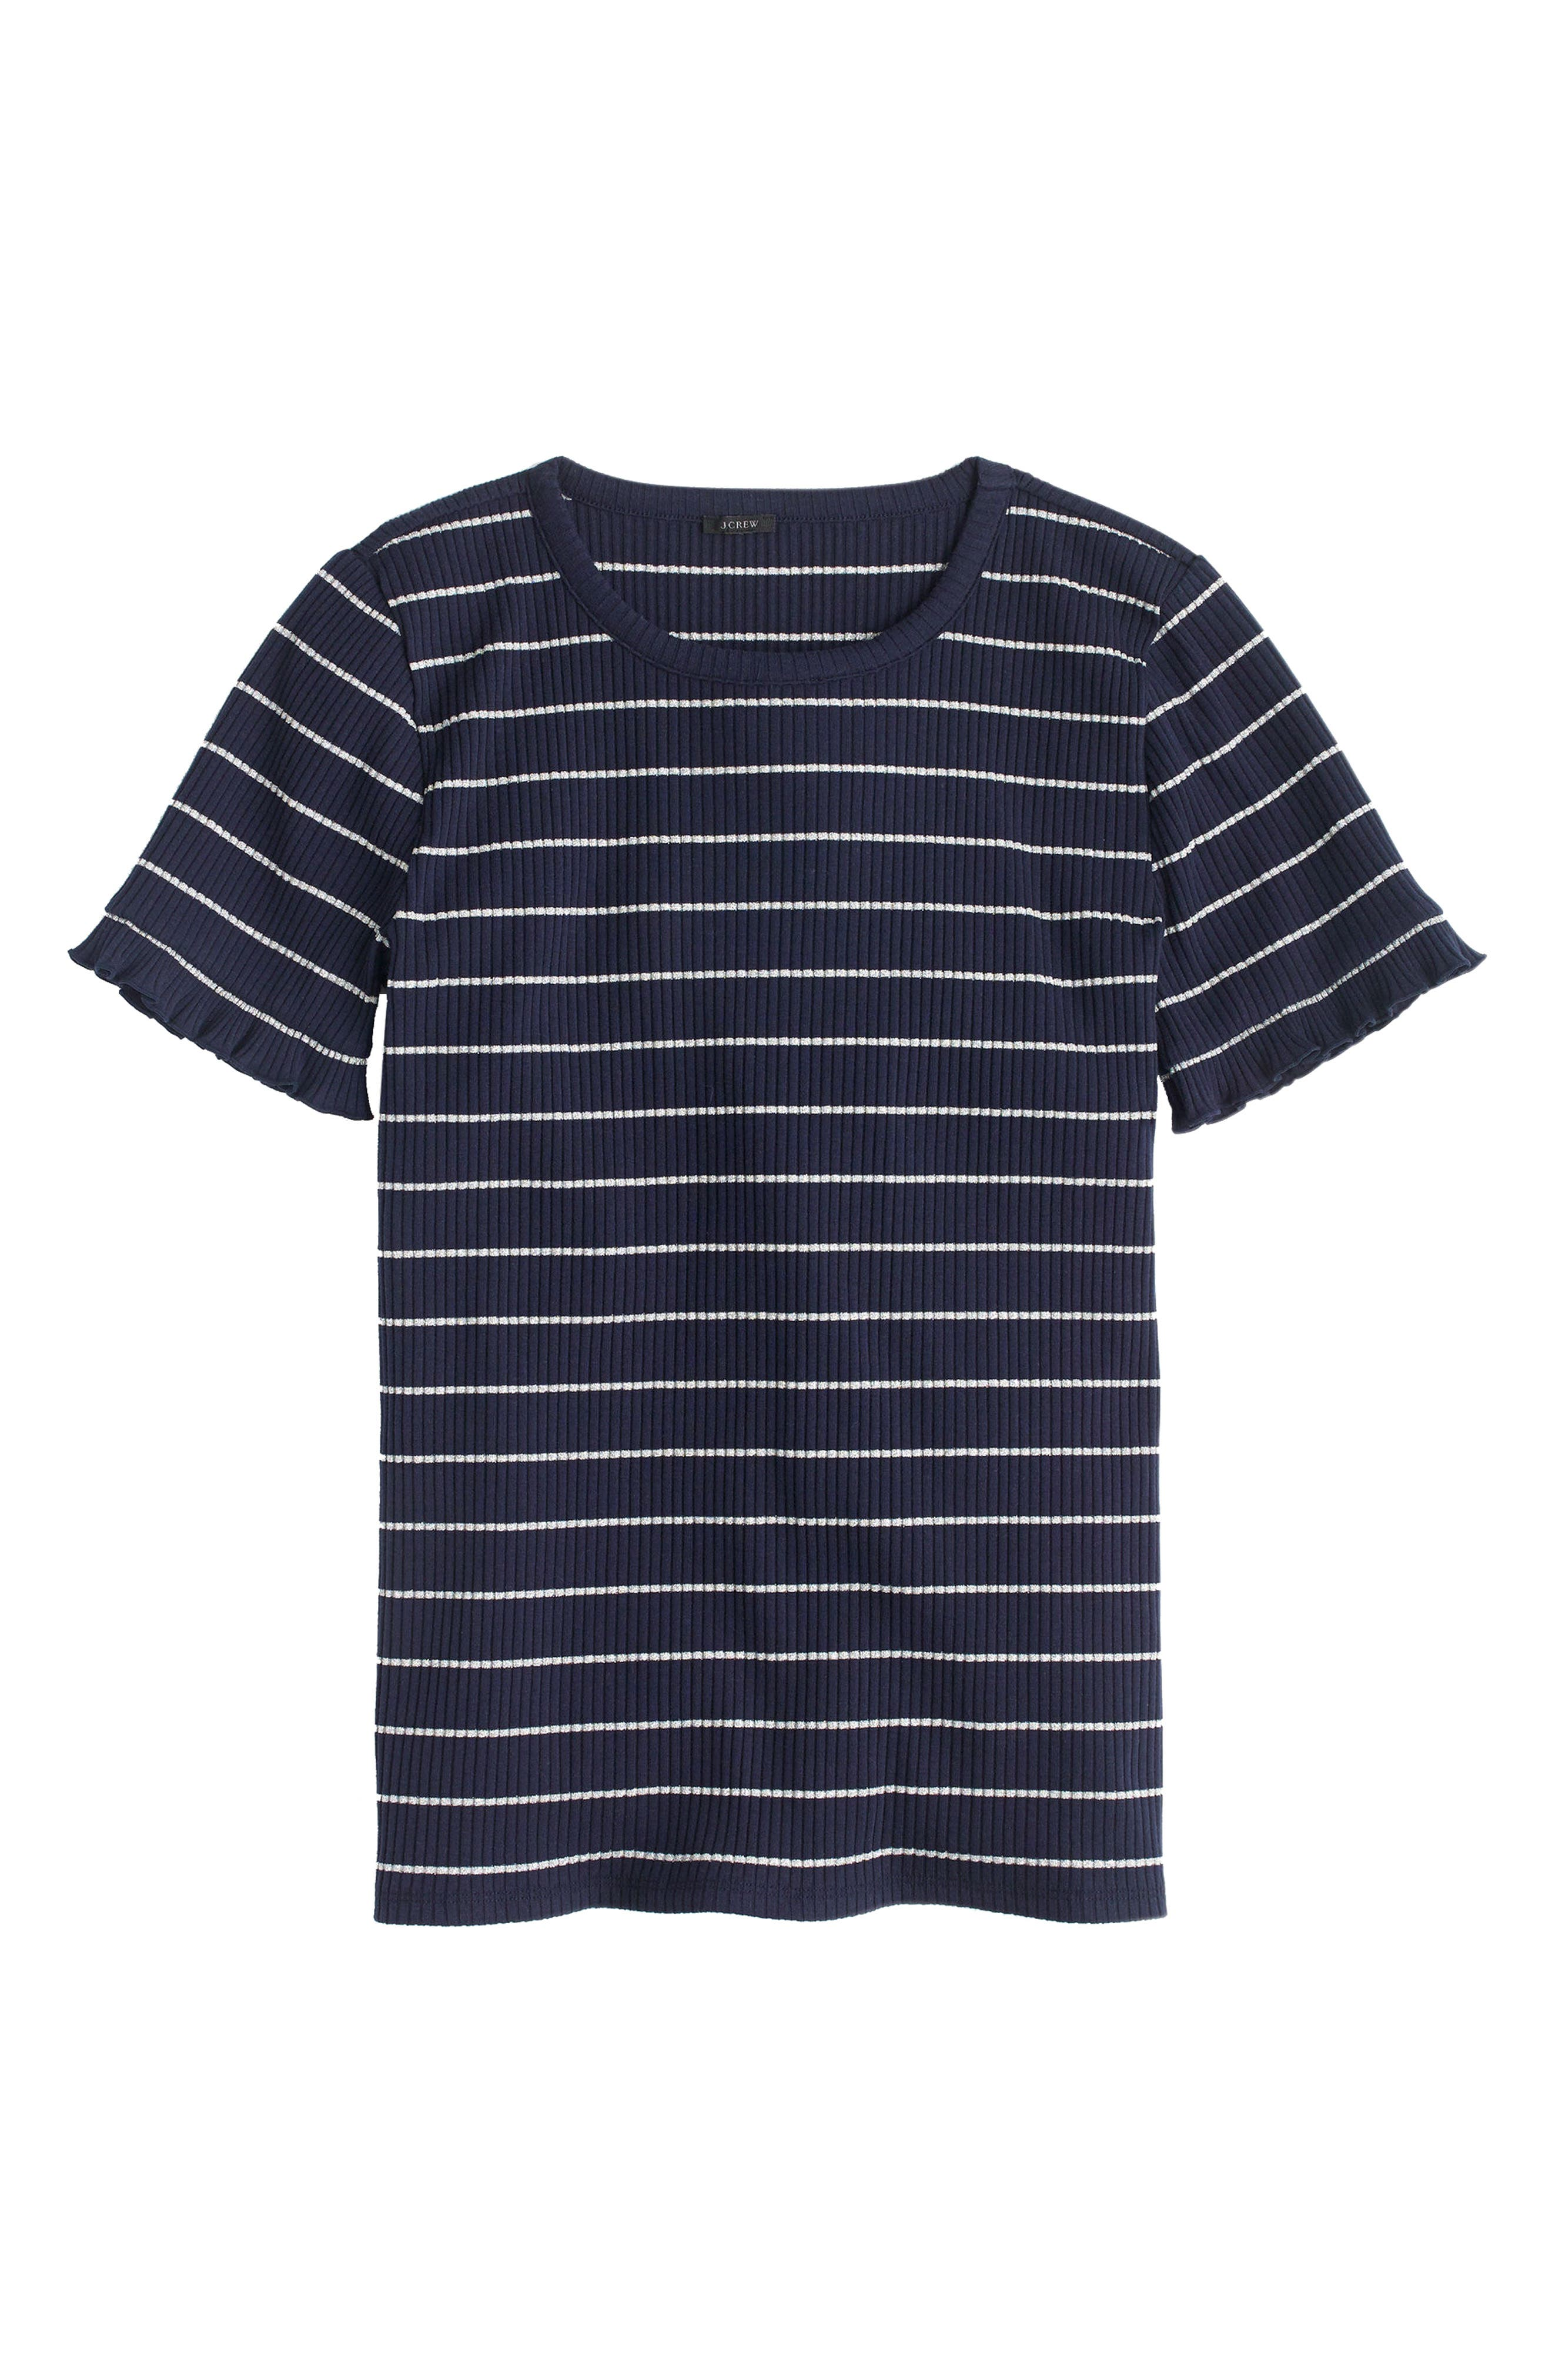 J.Crew Ribbed Stripe Tee with Ruffle Sleeves,                         Main,                         color, Navy/ Silver